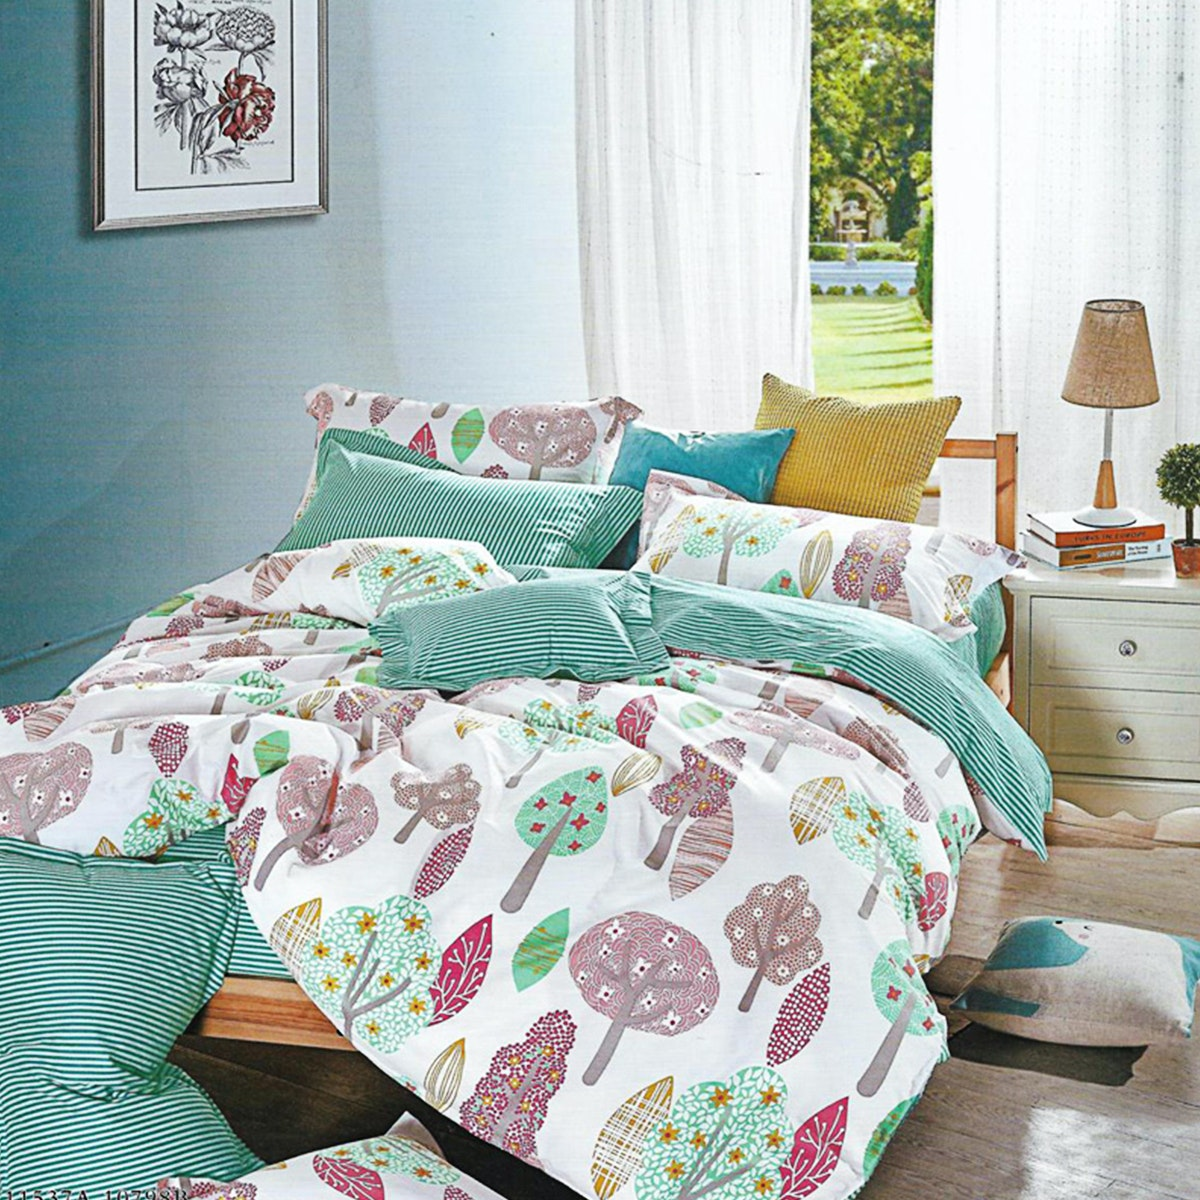 Sleep Buddy Set Sprei dan Bed Cover Greeny Garden Cotton Sateen 160x200x30